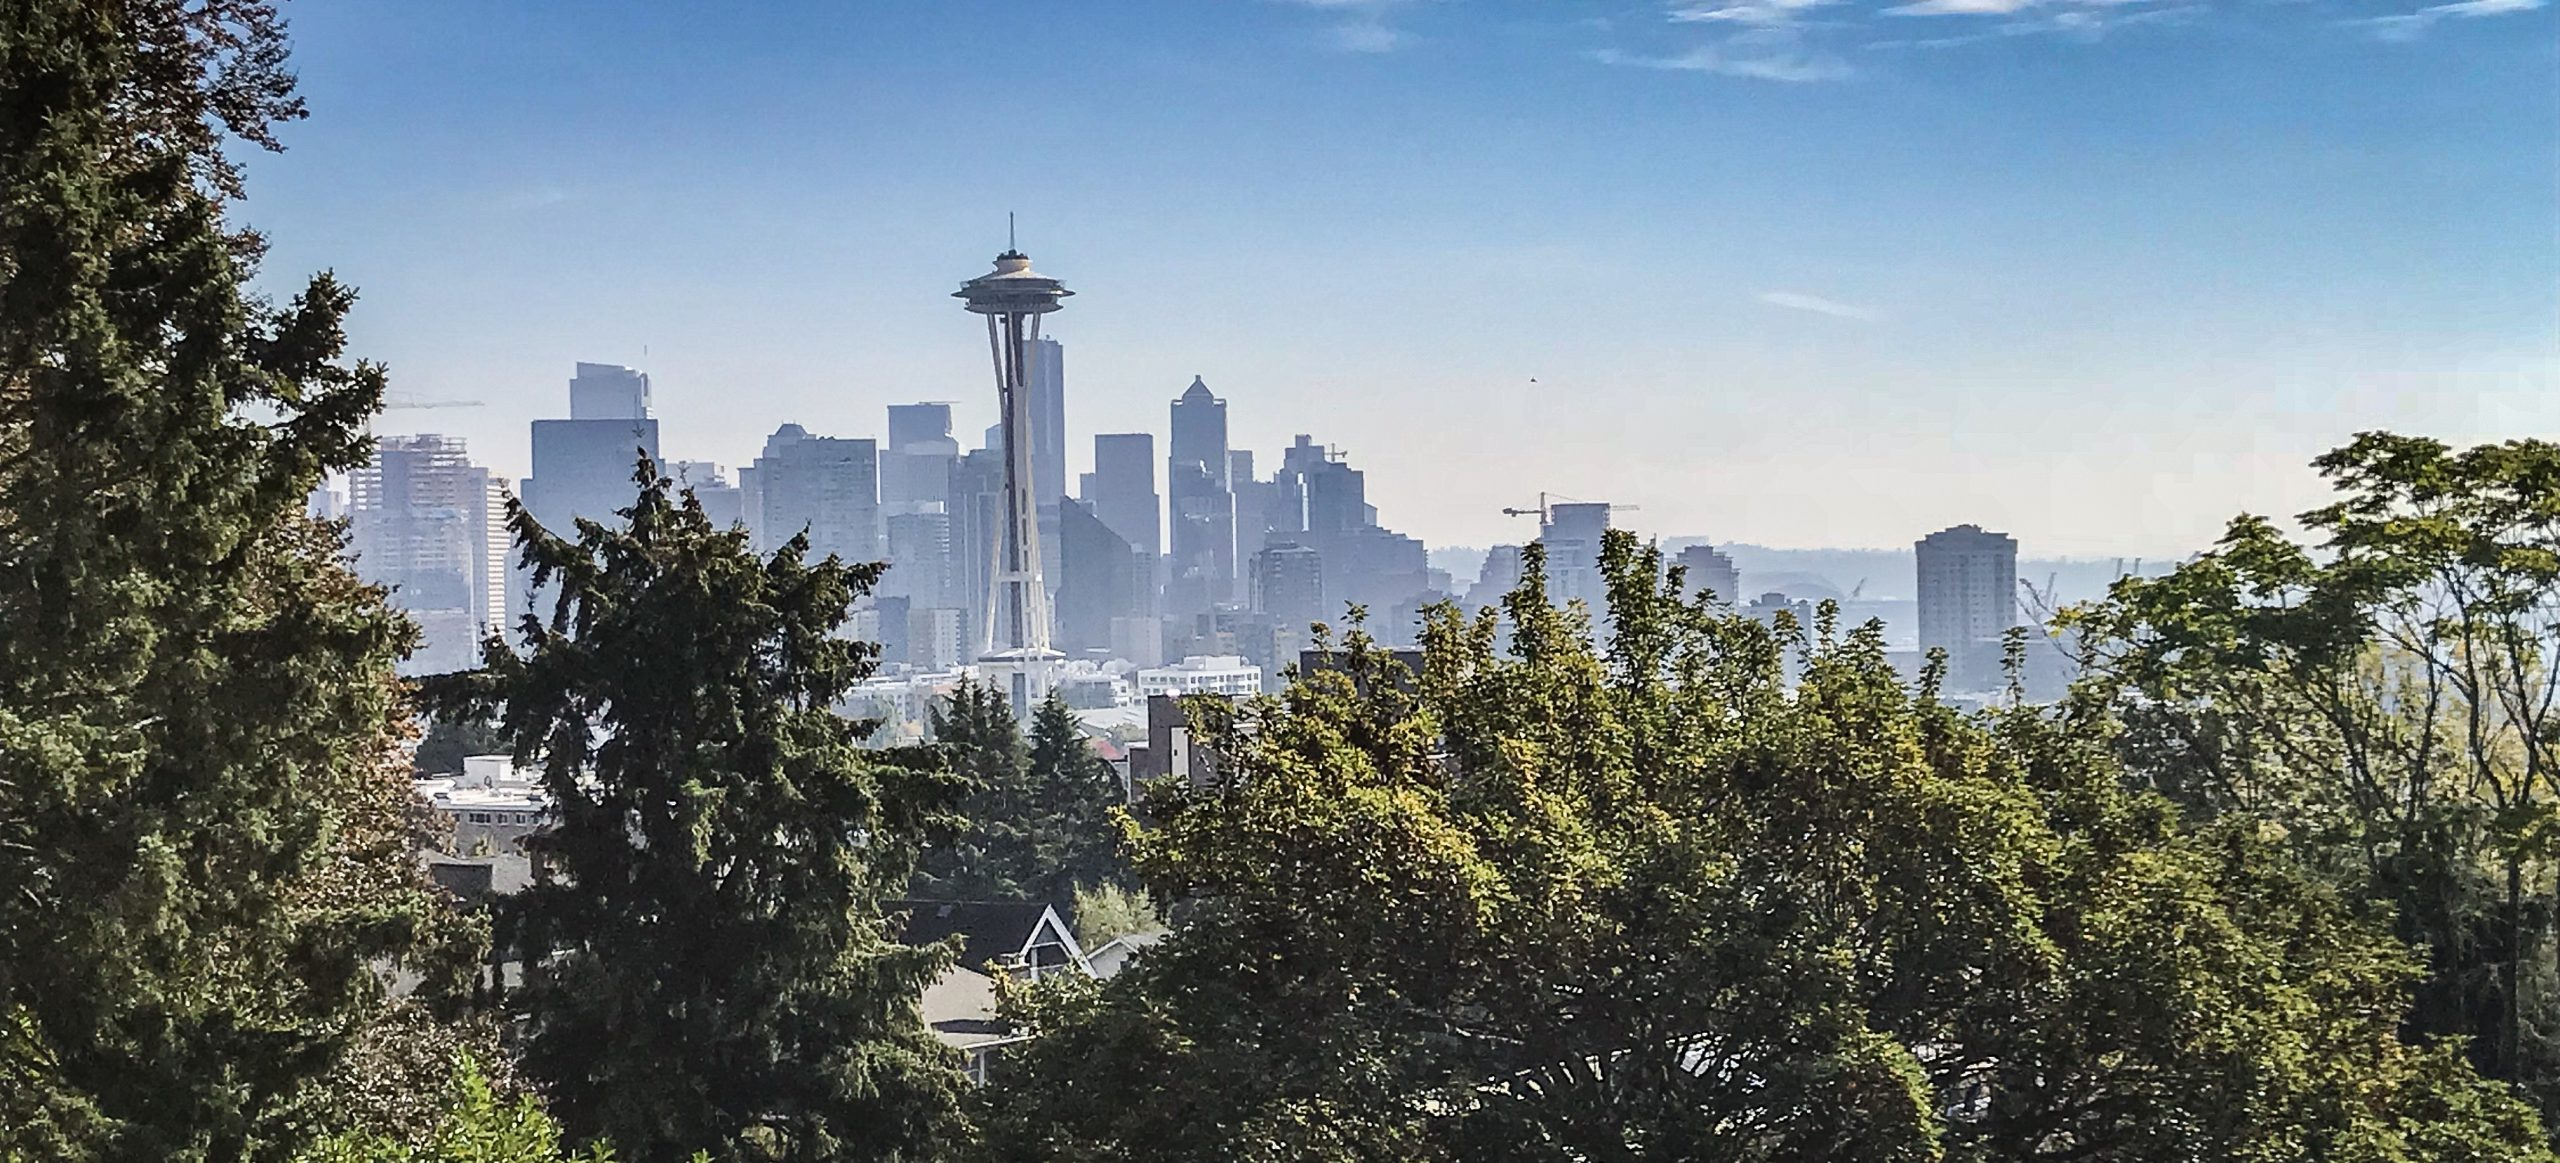 Seattle depuis le Kerry park